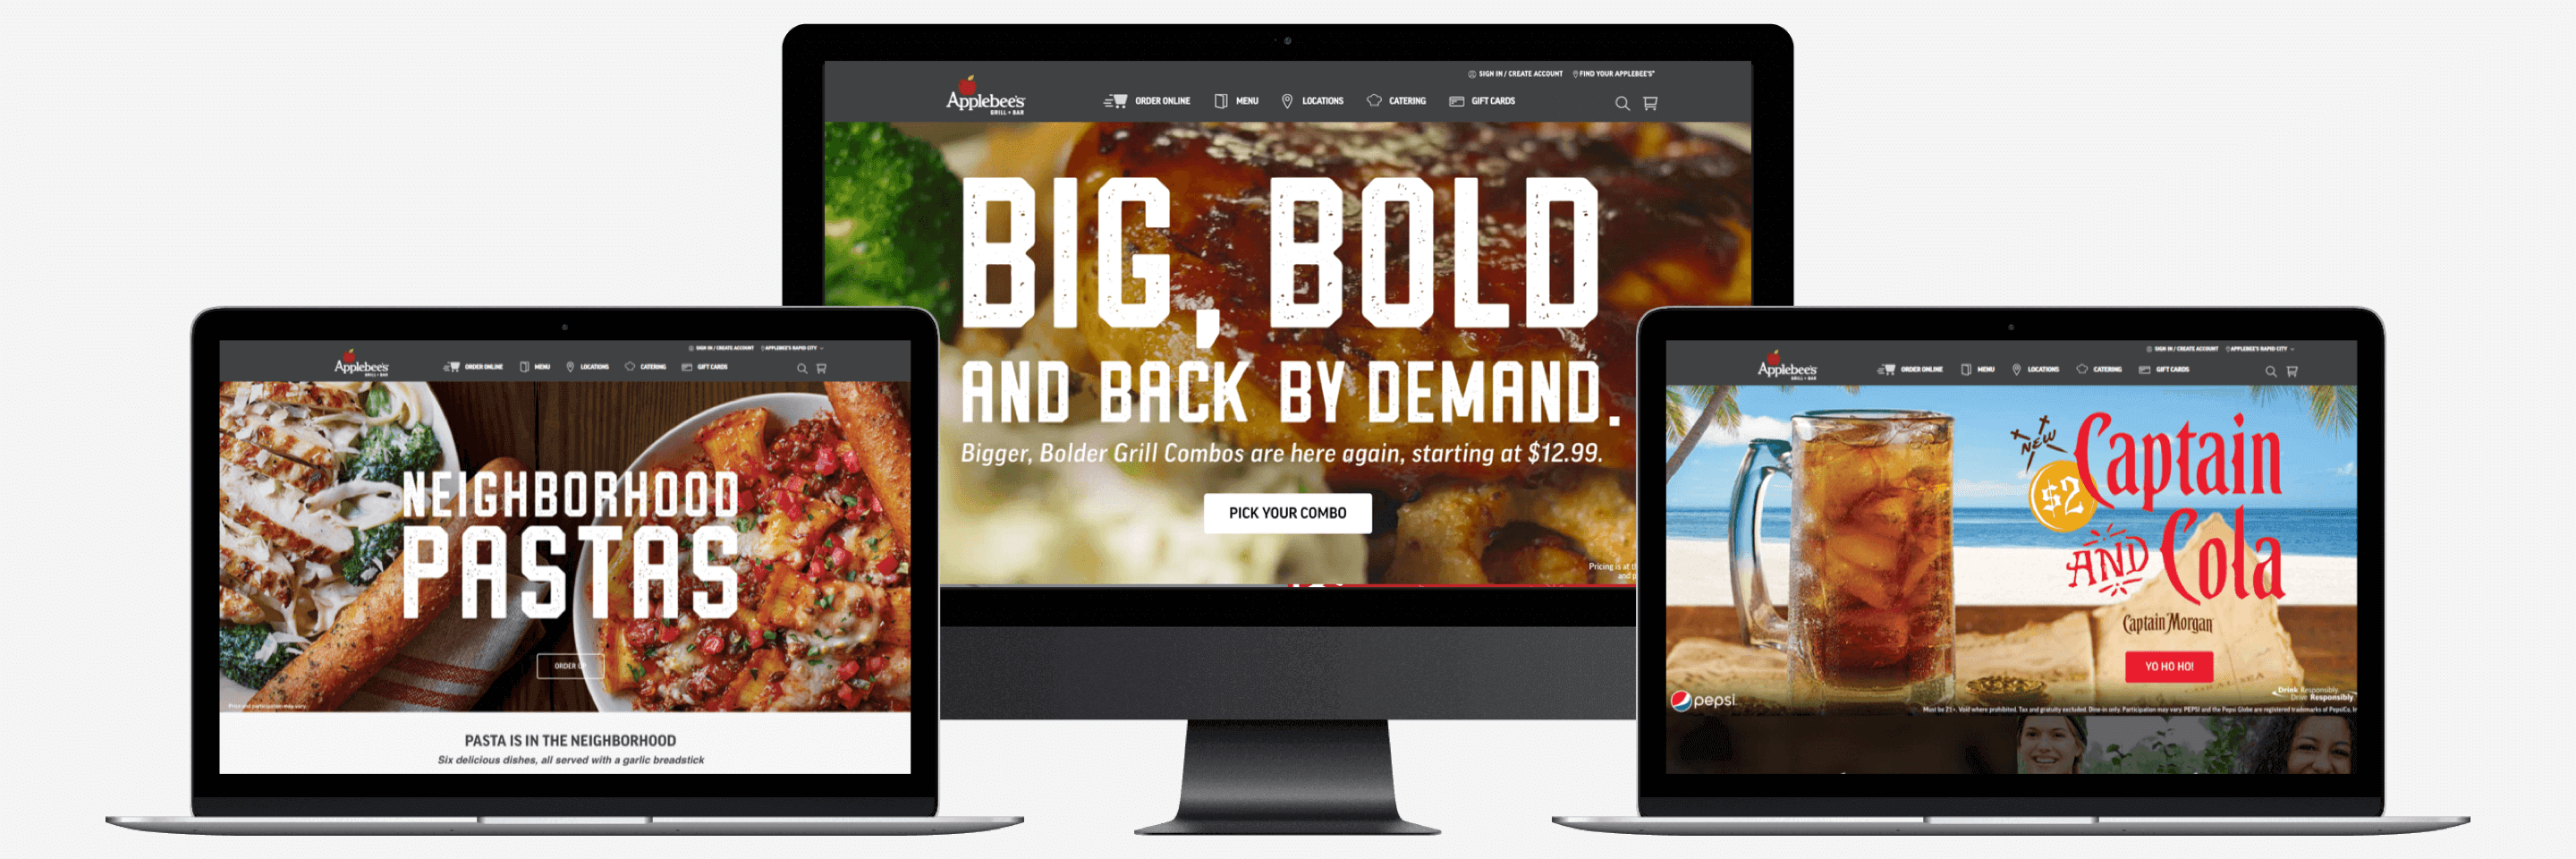 Responsive web site for Applebee's from ArcTouch